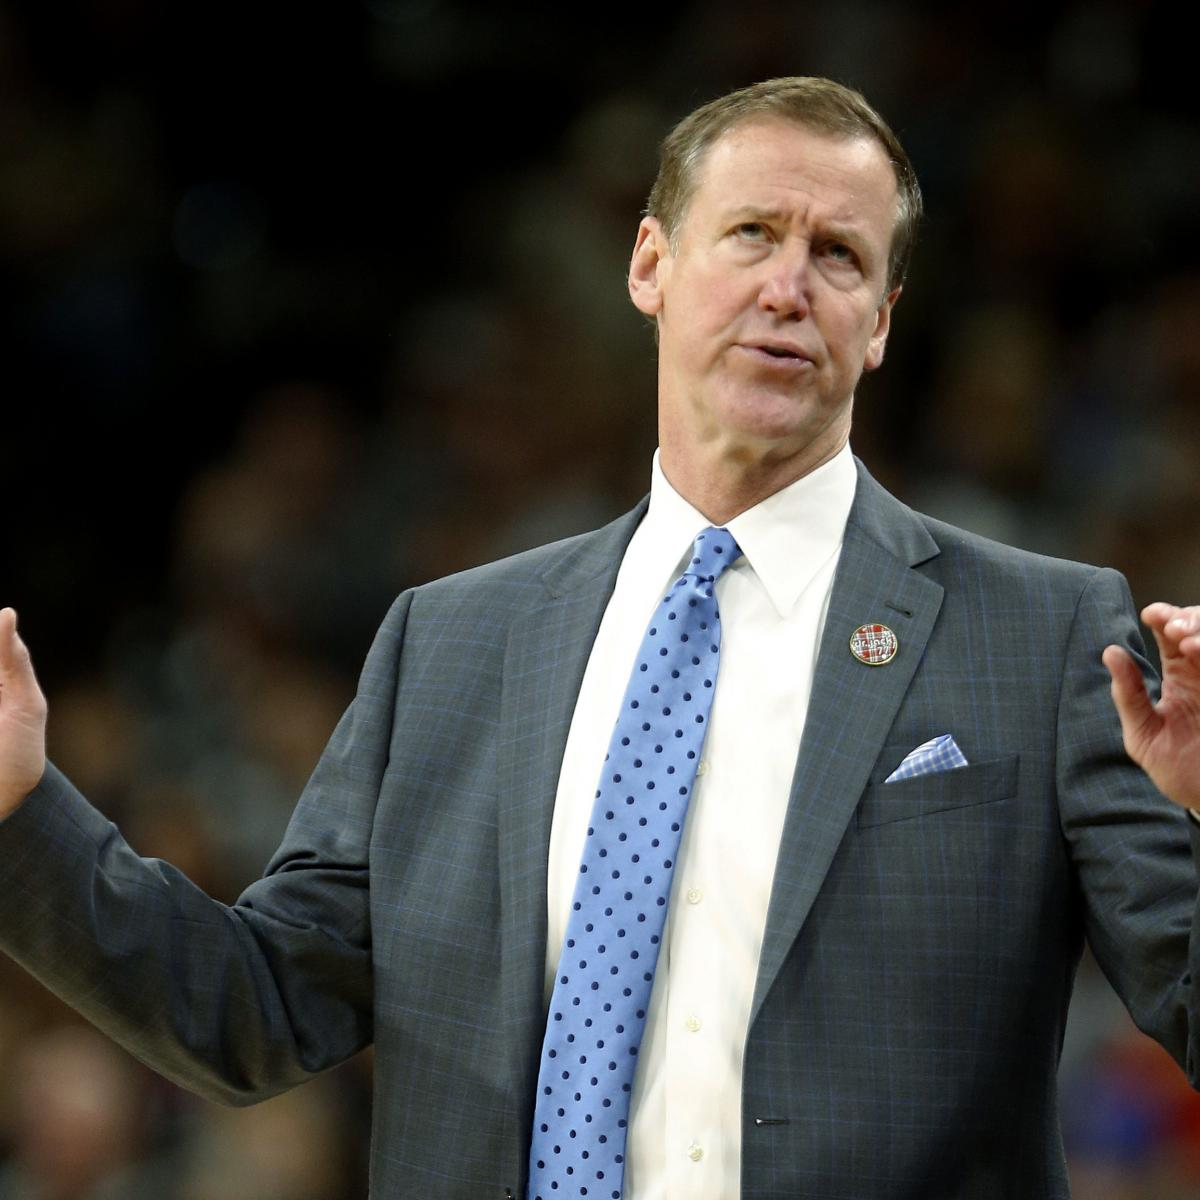 Portland Blazers Roster 2012: Terry Stotts Reportedly Could Be Fired After Pelicans